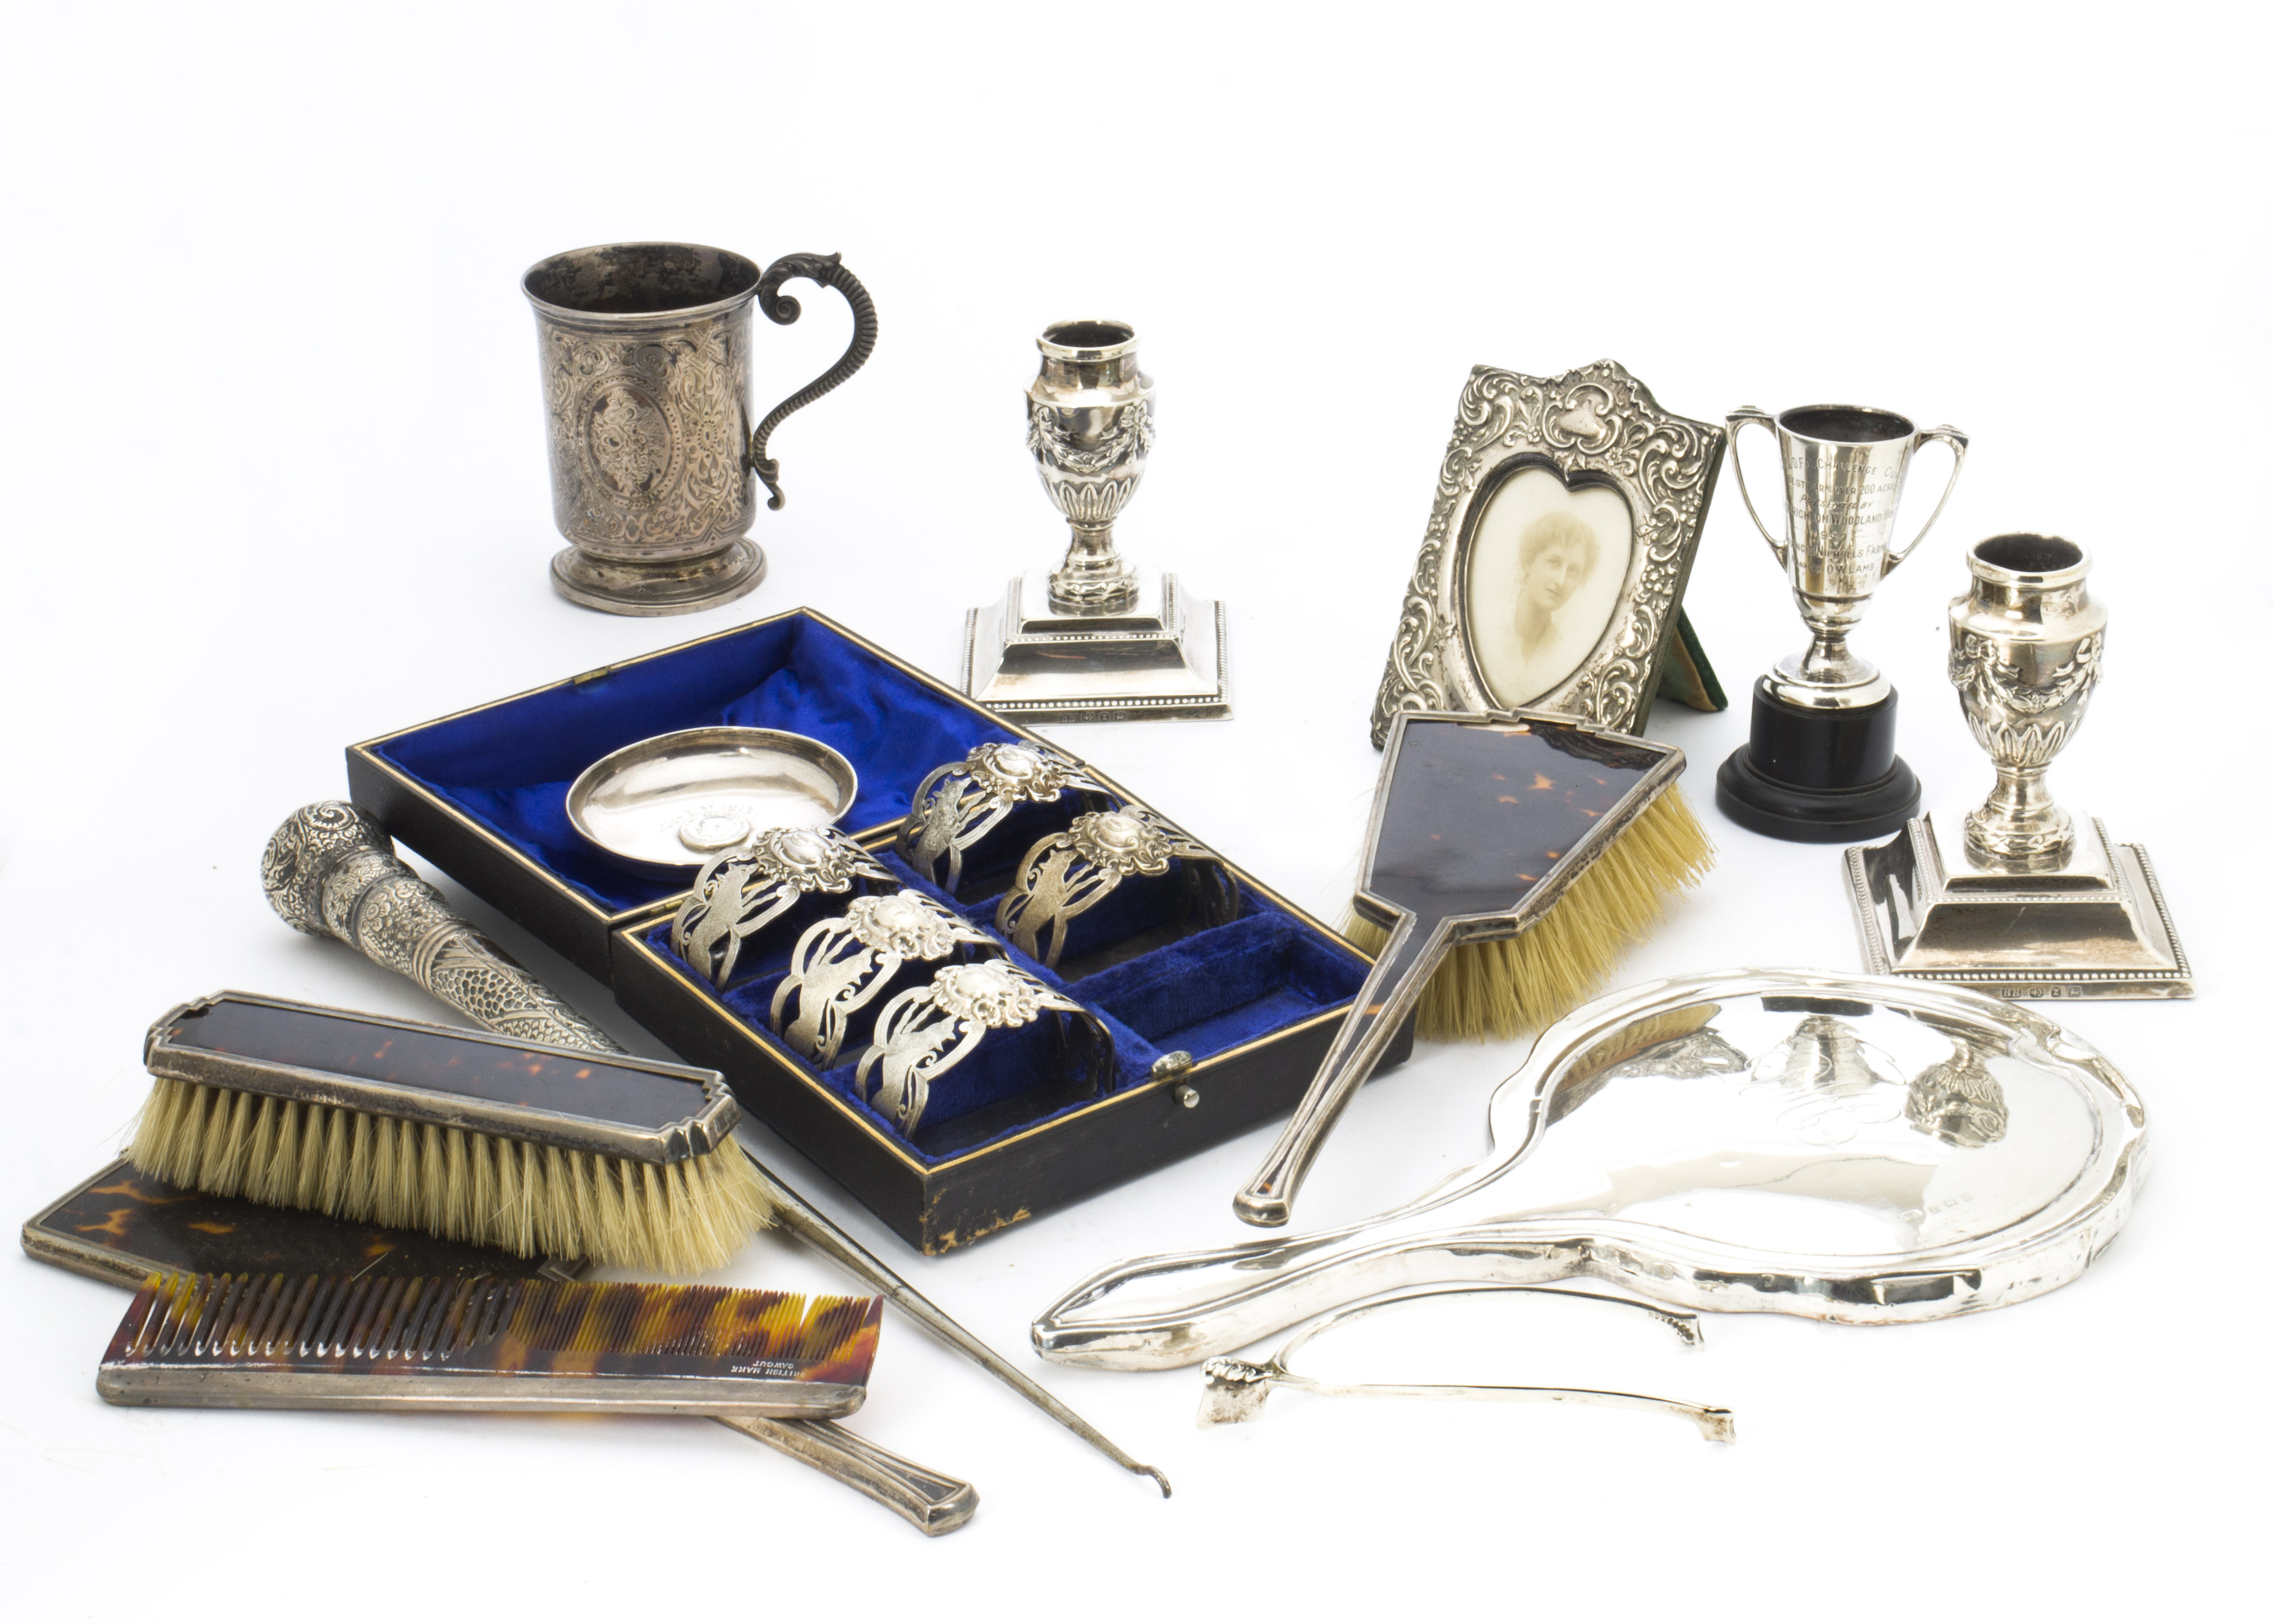 Lot 51 - A collection of Victorian silver and later collectables, including Christening tankard, a pair